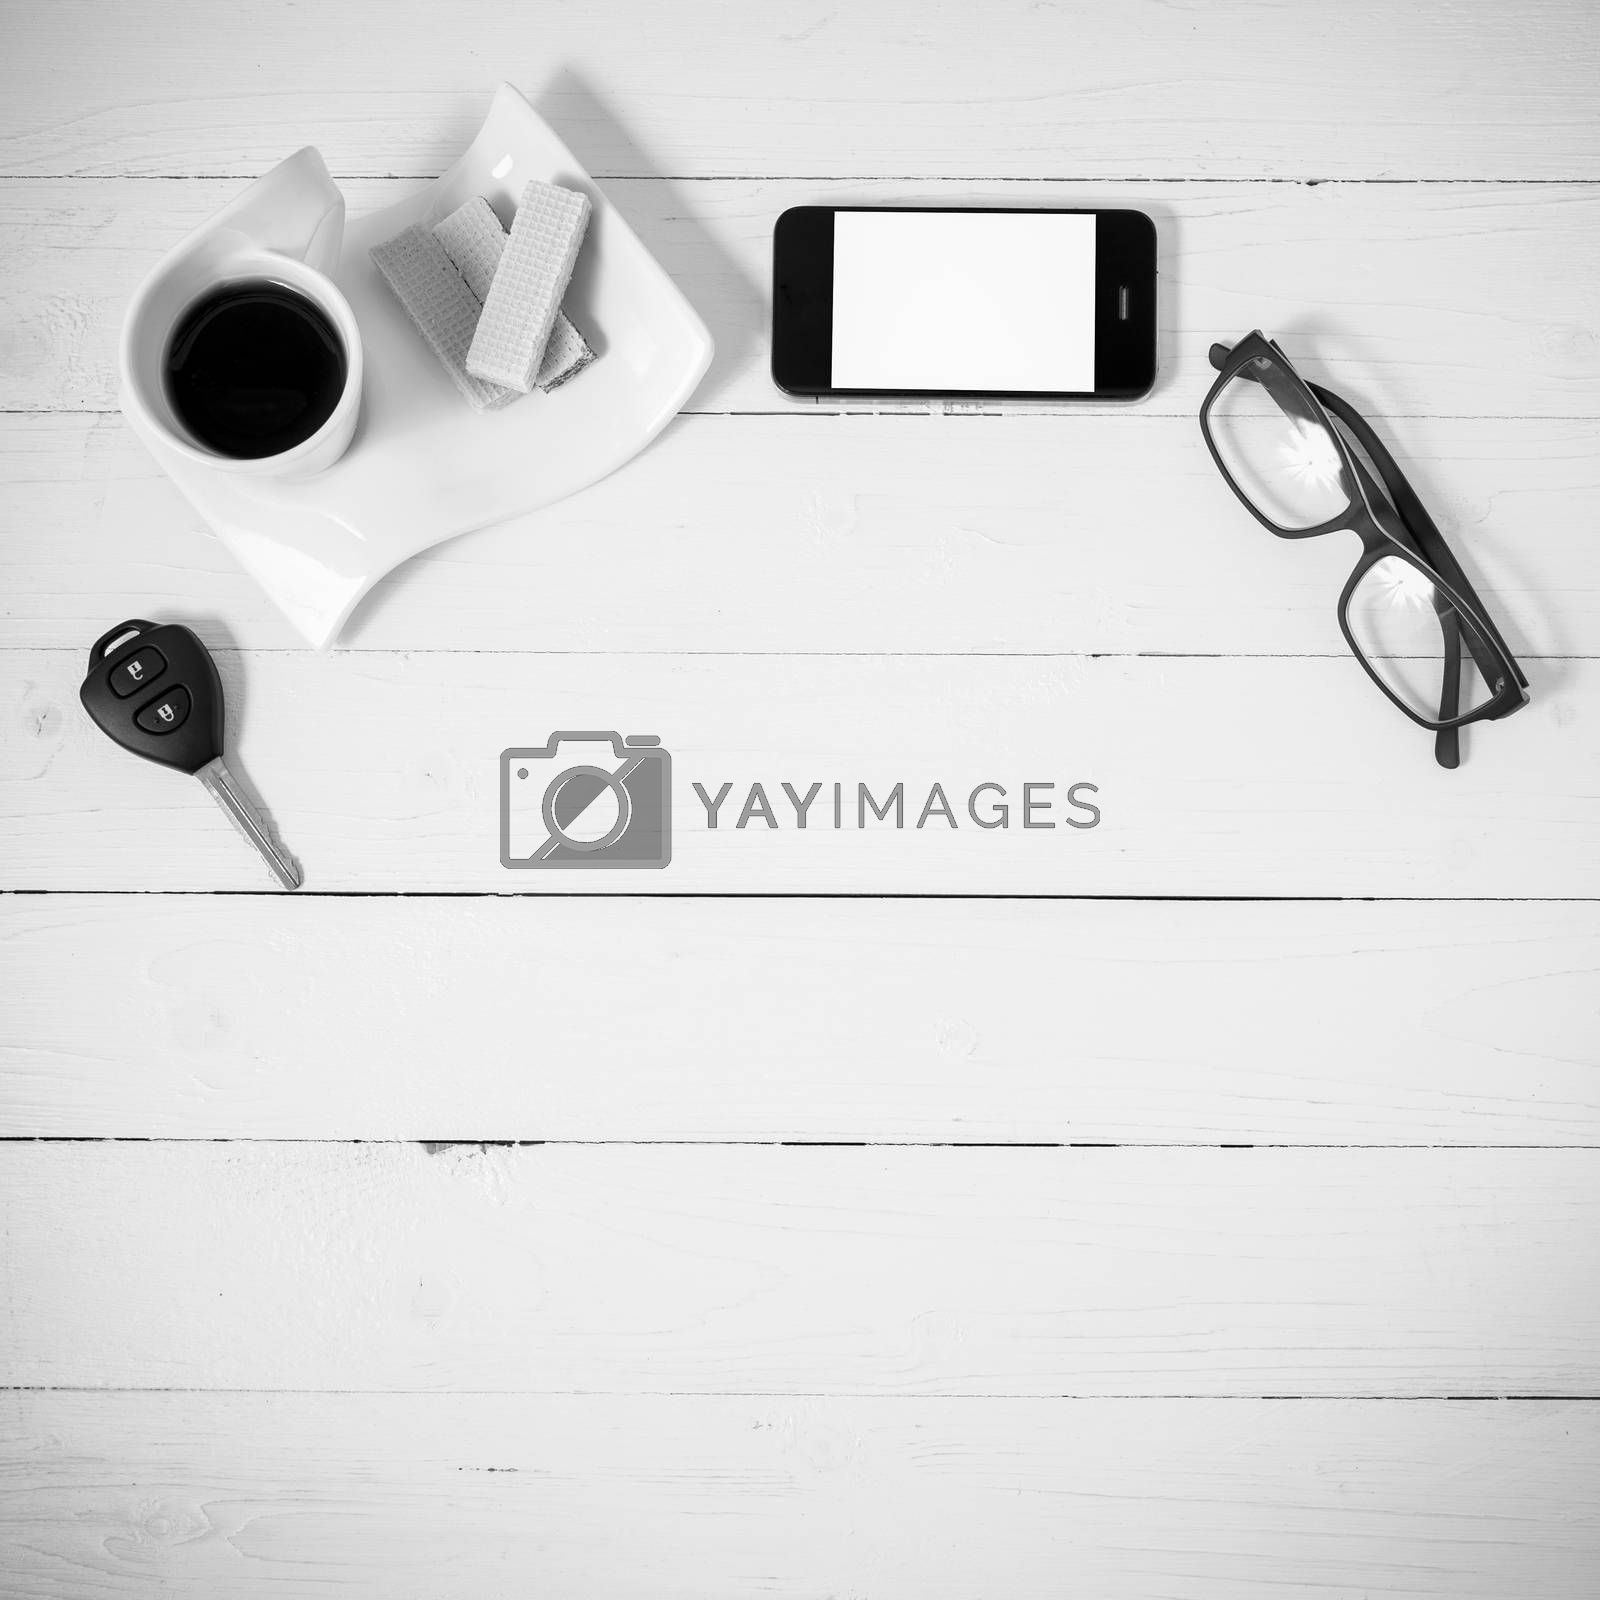 Royalty free image of coffee cup with wafer,phone,car key,eyeglasses black and white c by ammza12